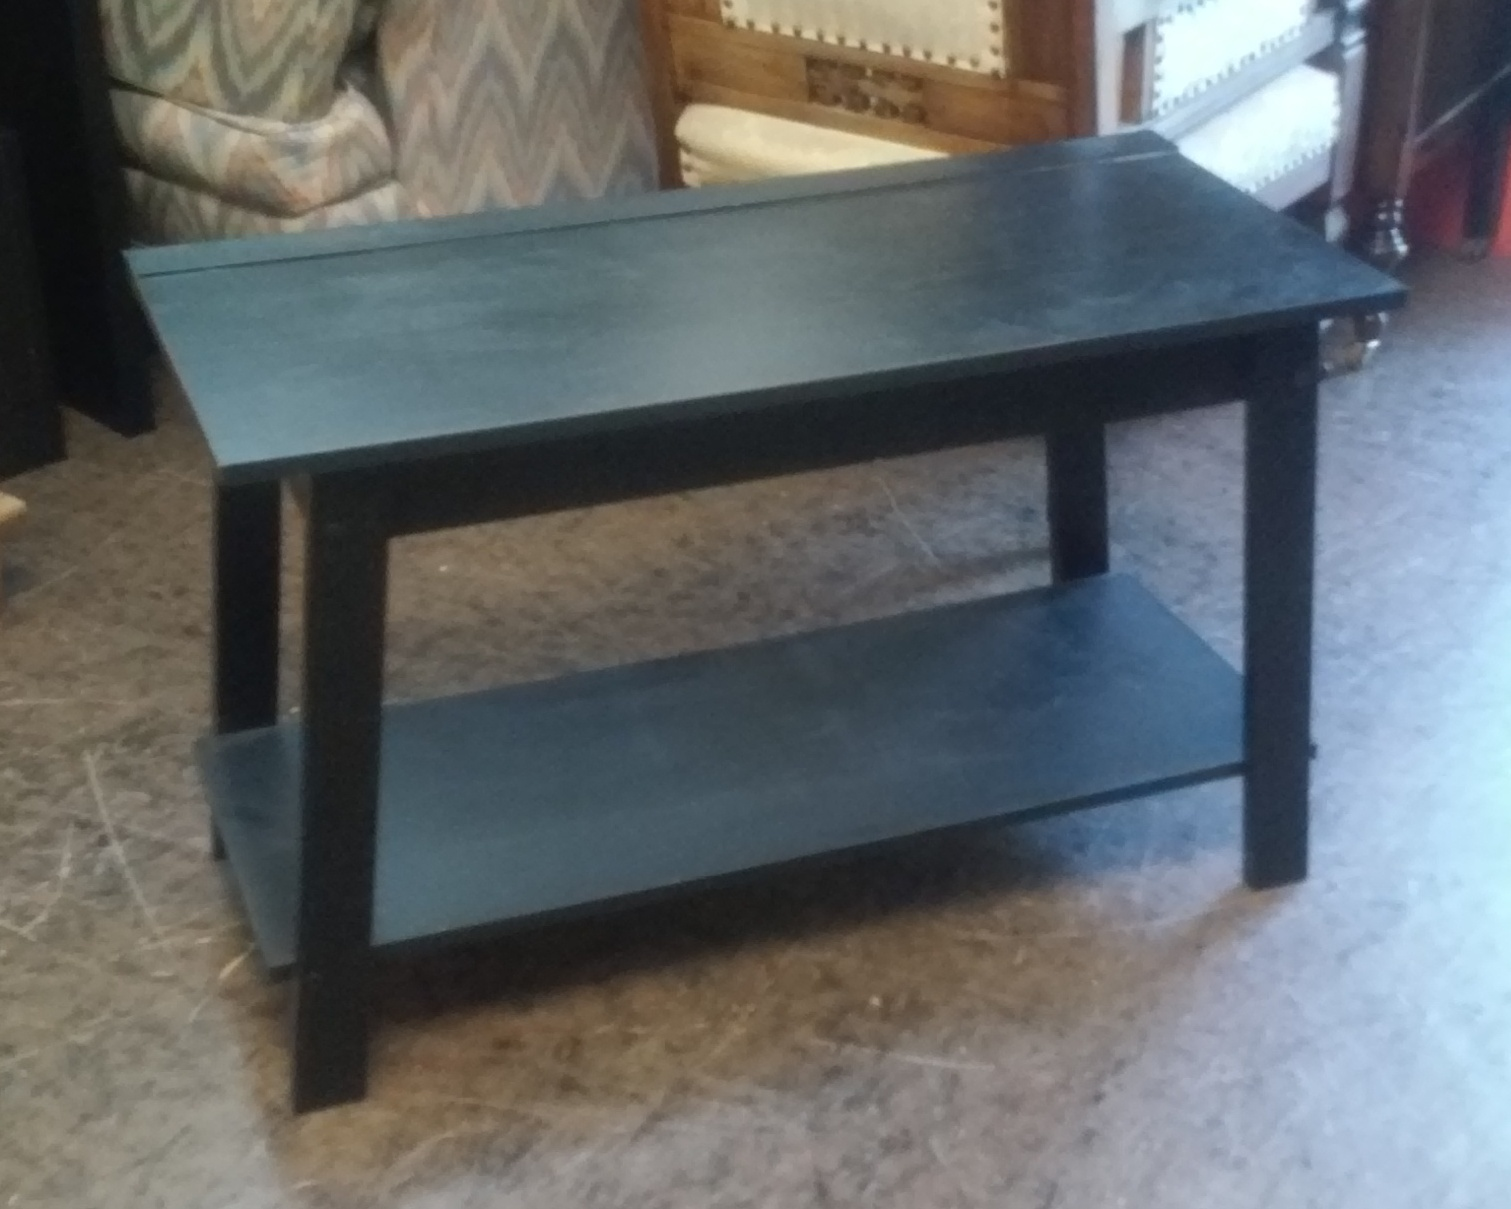 Uhuru furniture collectibles sold reduced 3 39 modern for Reduced furniture